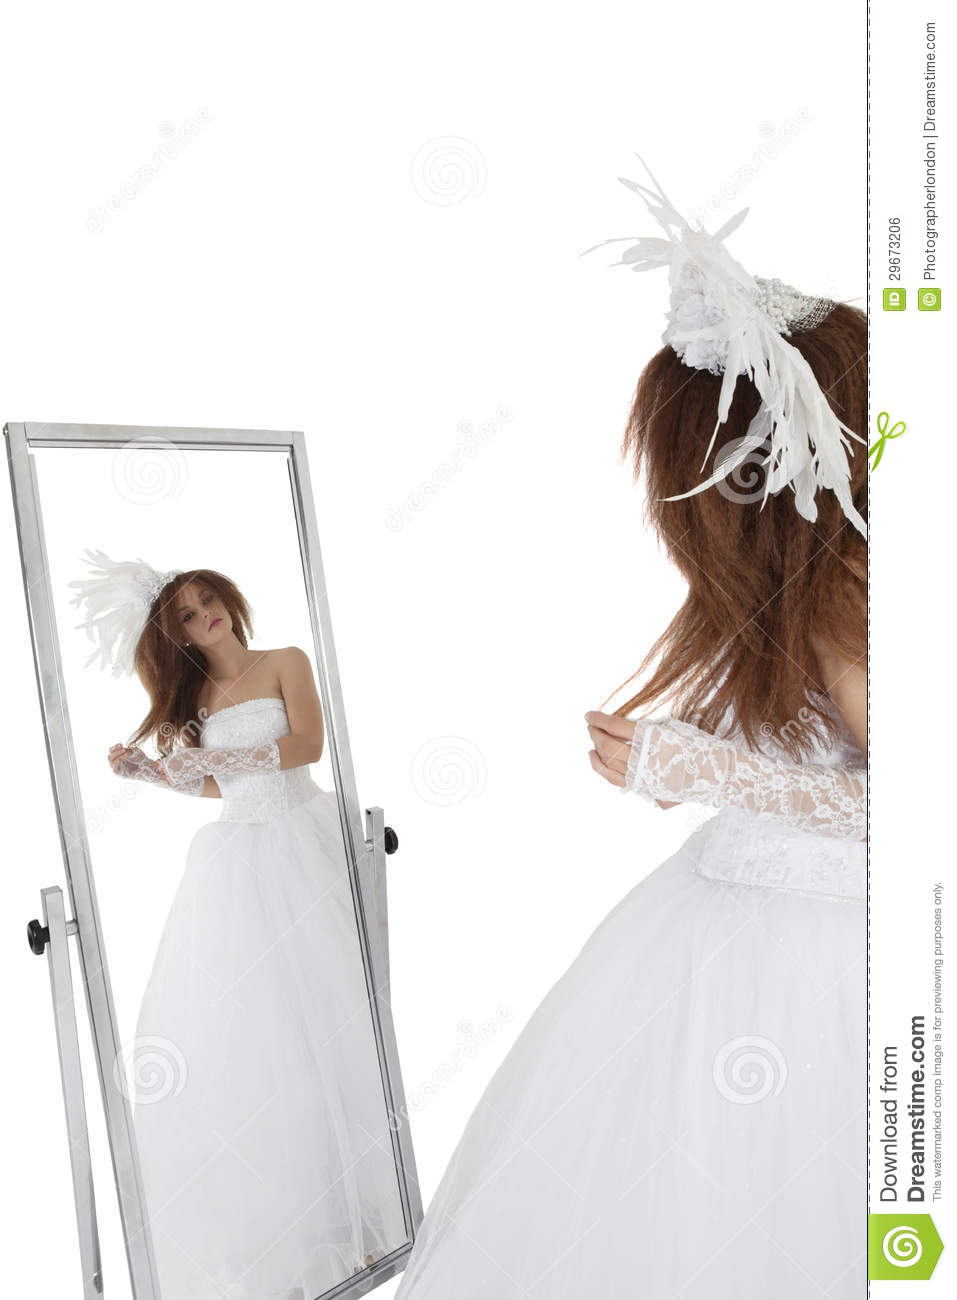 Brunette In Wedding Gown Looking At Mirror Over White Background Royalty Free Stock Image